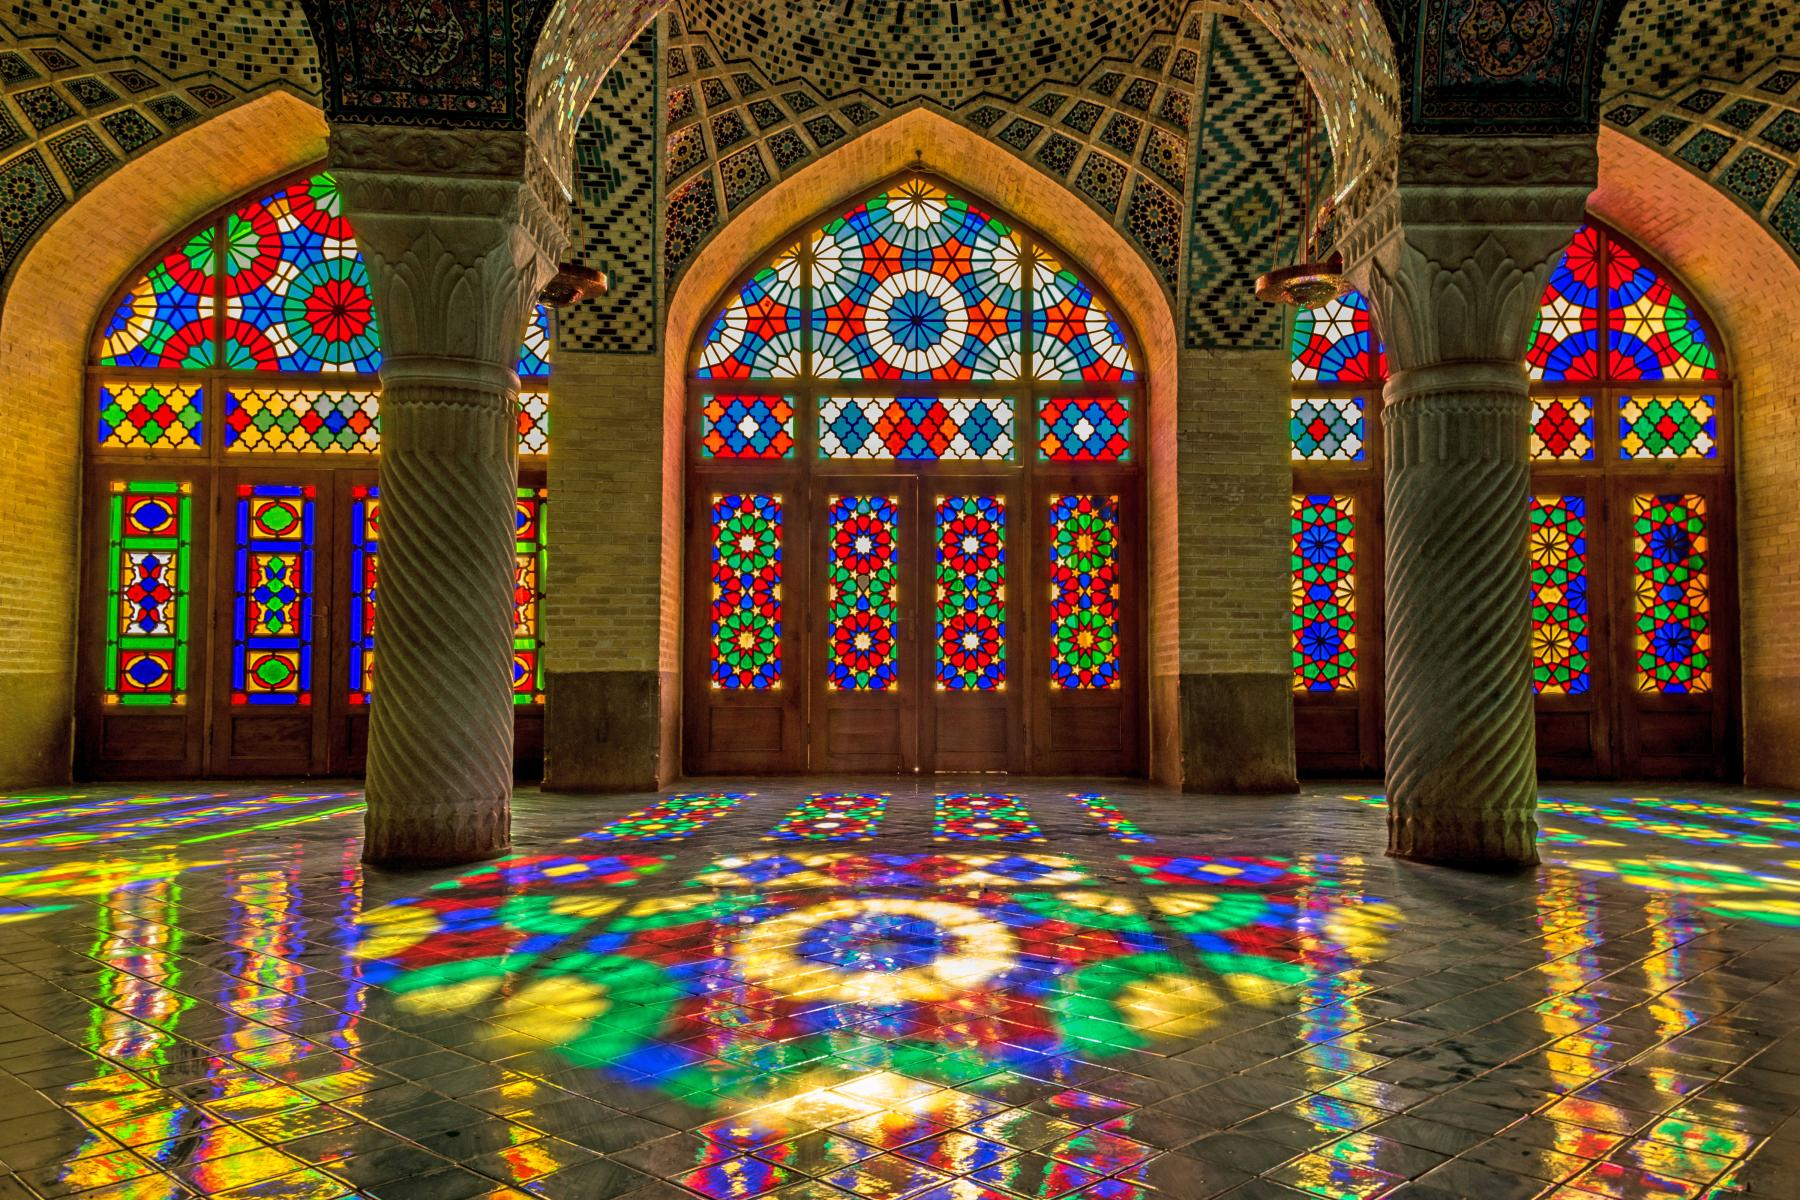 A Journey to the Mystical, Ancient, and Colourful Persia - Iran starting at Iran